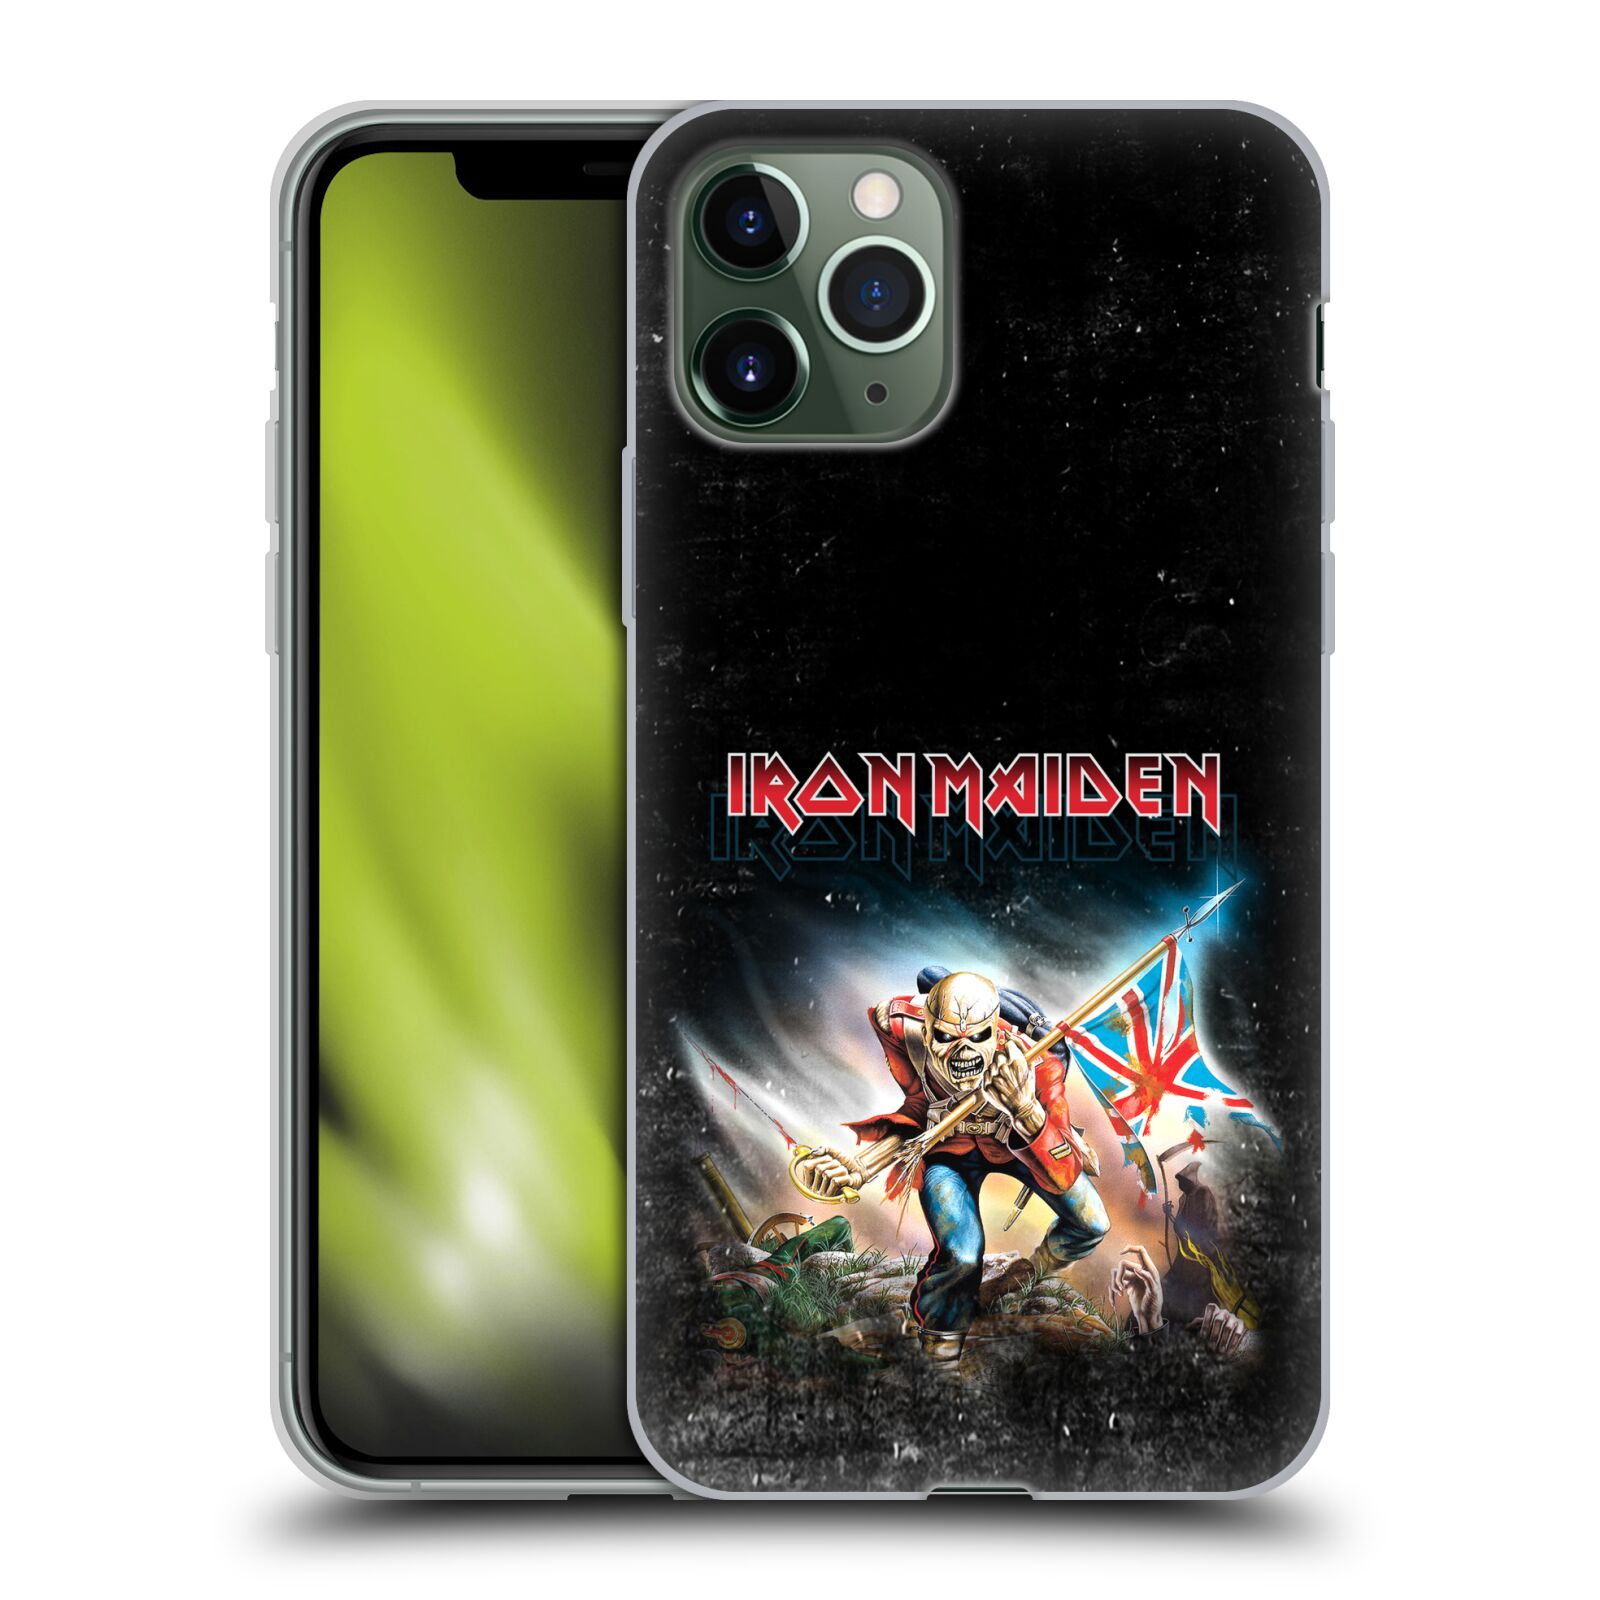 kryt na iphone xr apple | Silikonové pouzdro na mobil Apple iPhone 11 Pro - Head Case - Iron Maiden - Trooper 2016